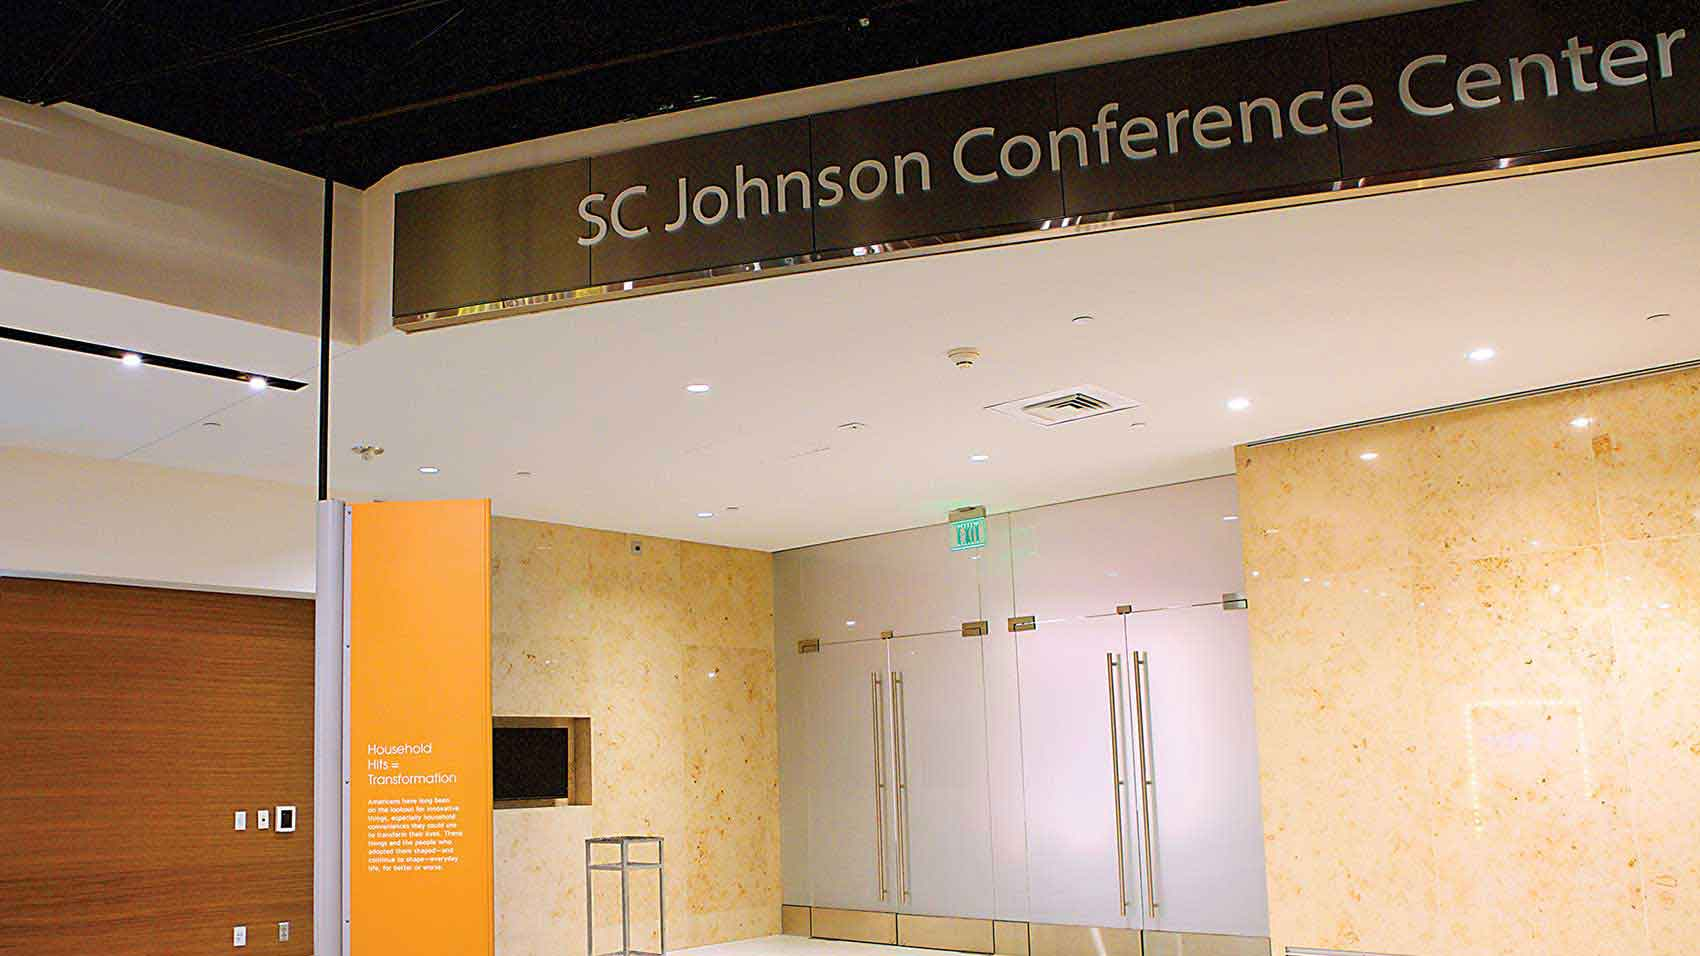 The SC Johnson Conference Center at the Smithsonian